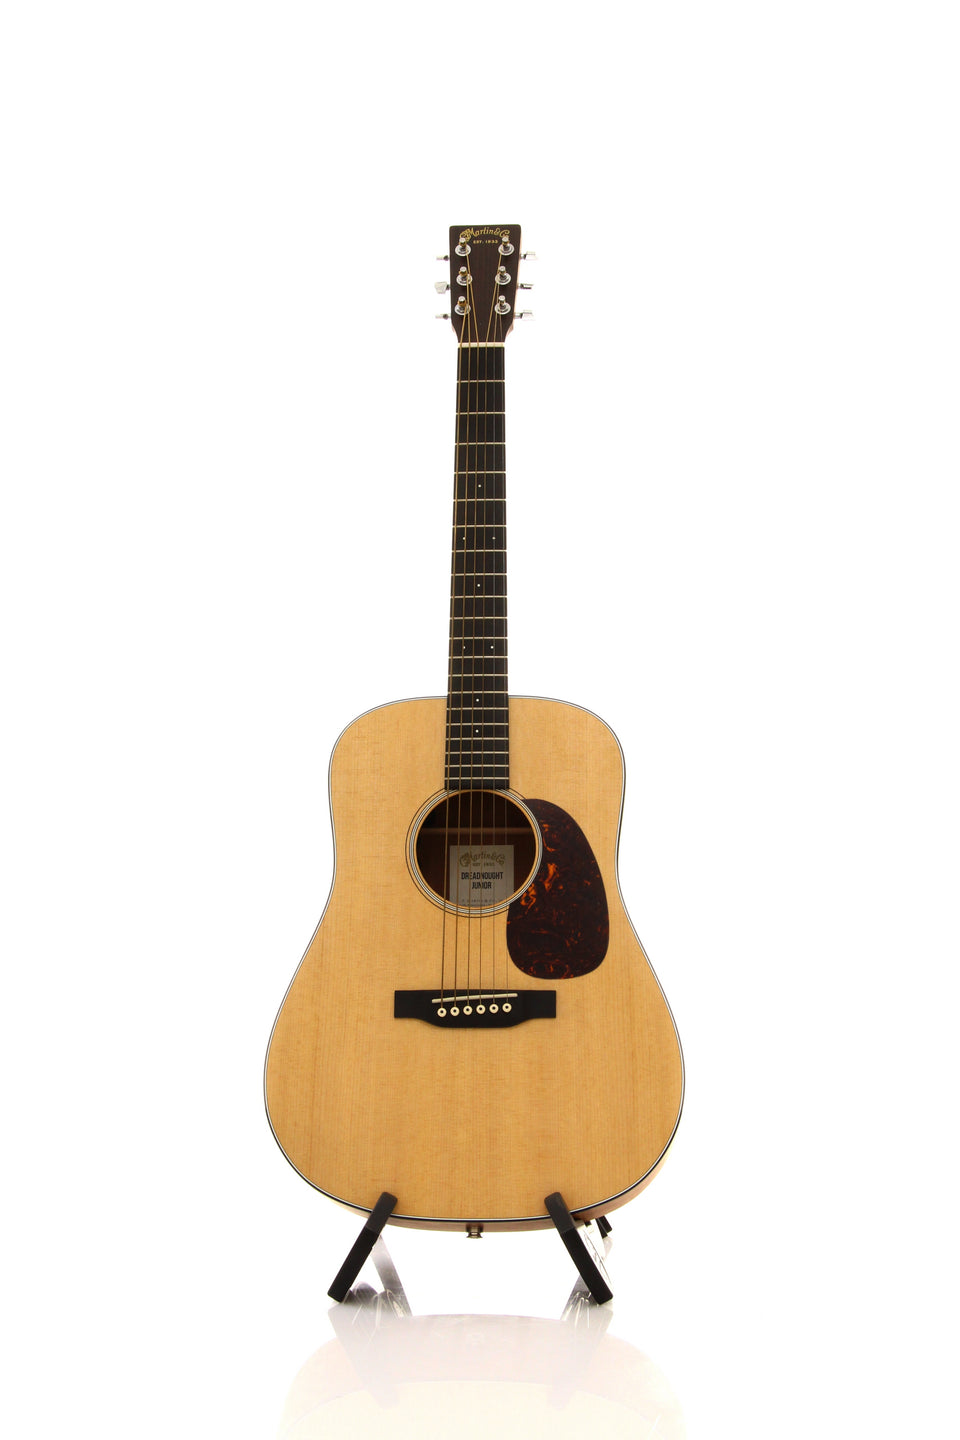 Martin D JR. E Travel Sized Acoustic Electric Guitar